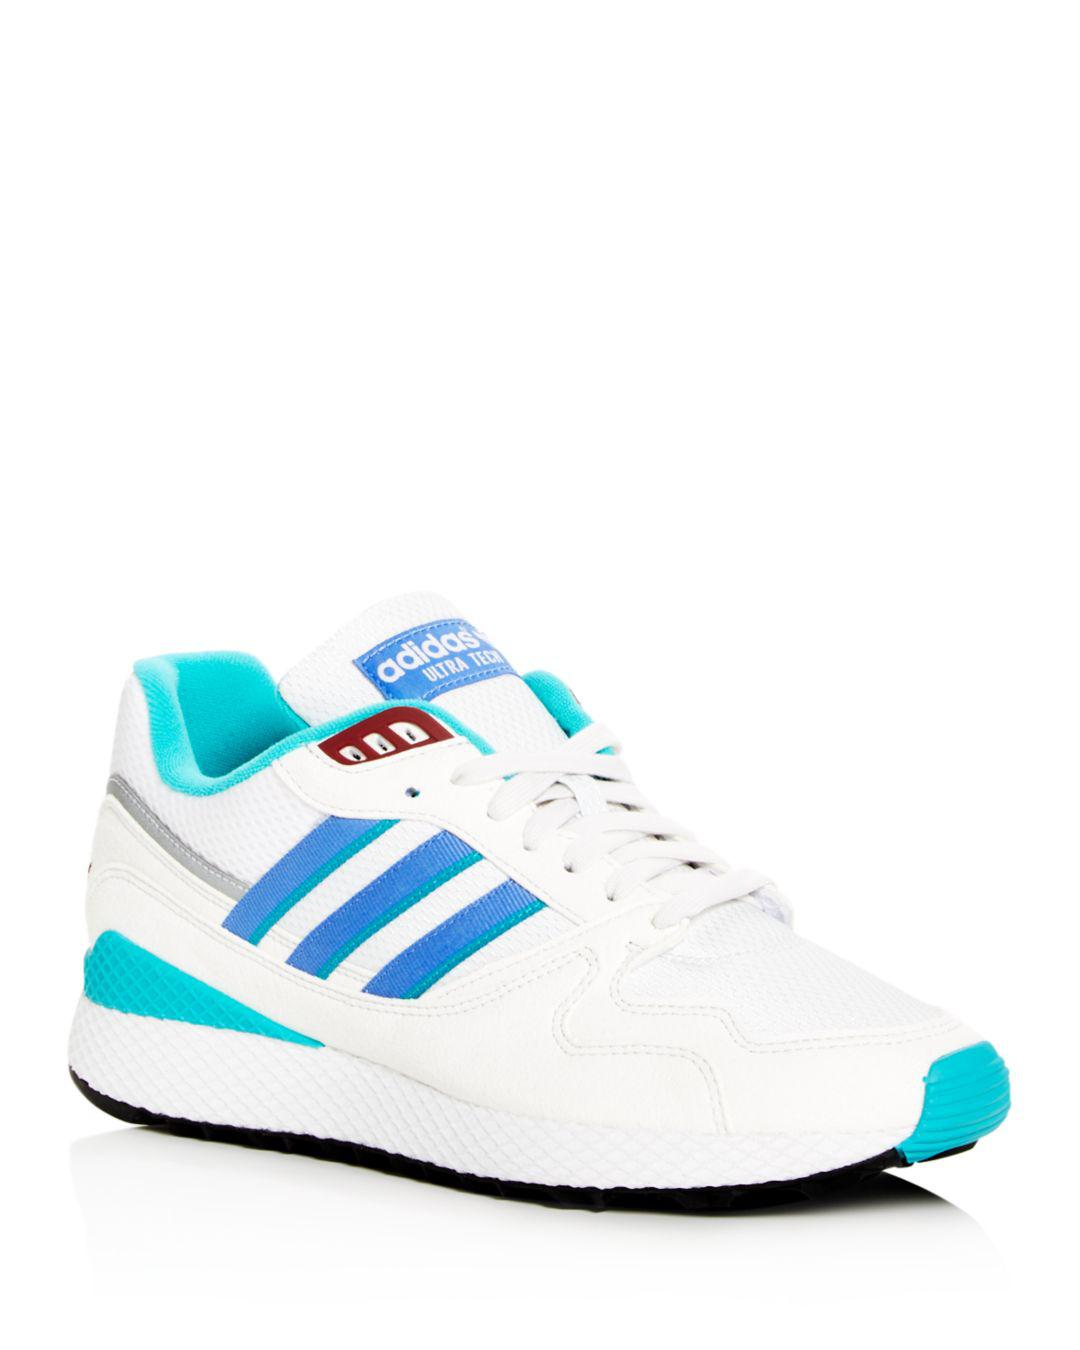 98bfb19a9860c Lyst - Adidas Men s Ultra Tech Lace Up Sneakers in White for Men